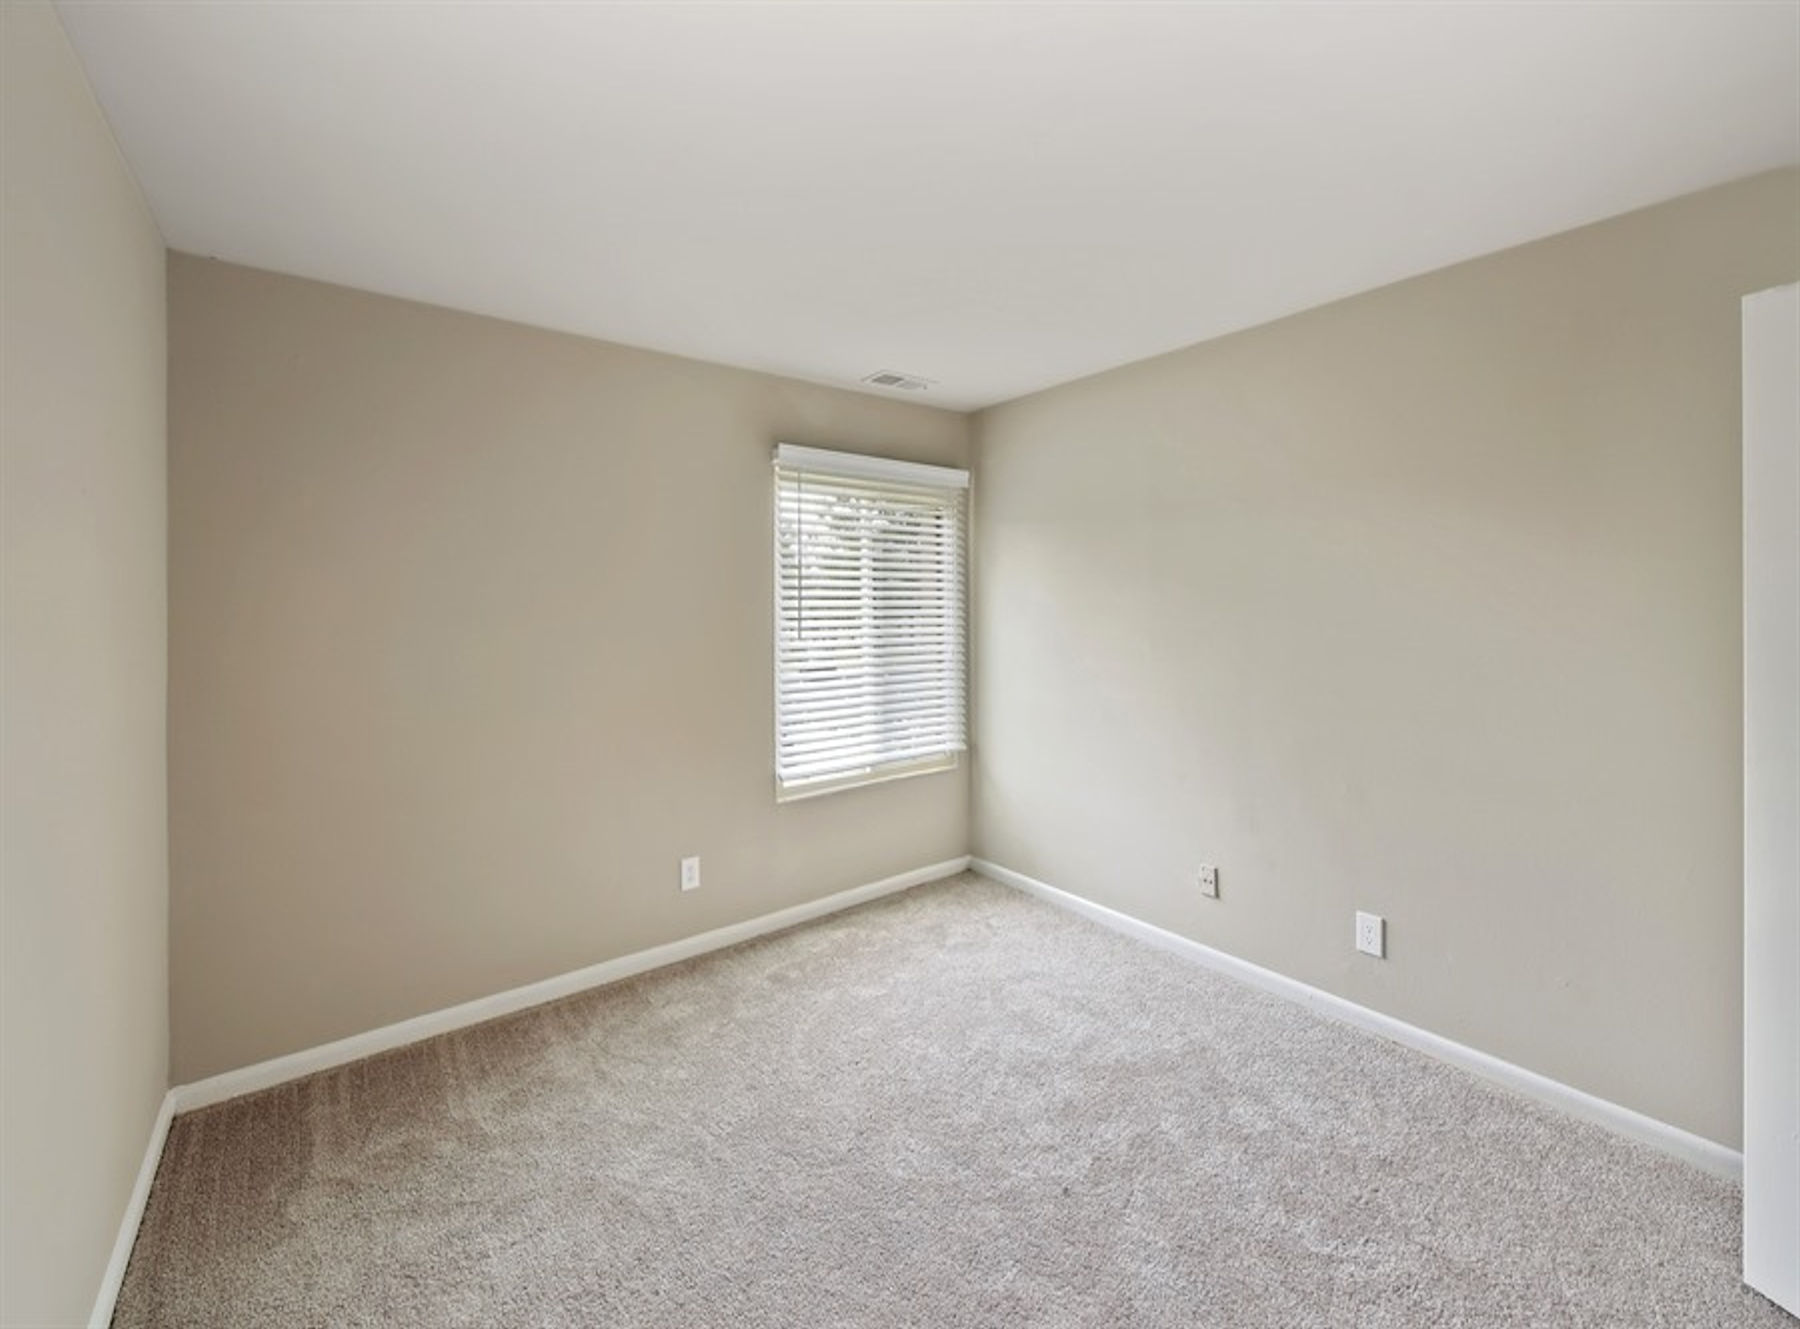 Model bedroom with large window and carpet.